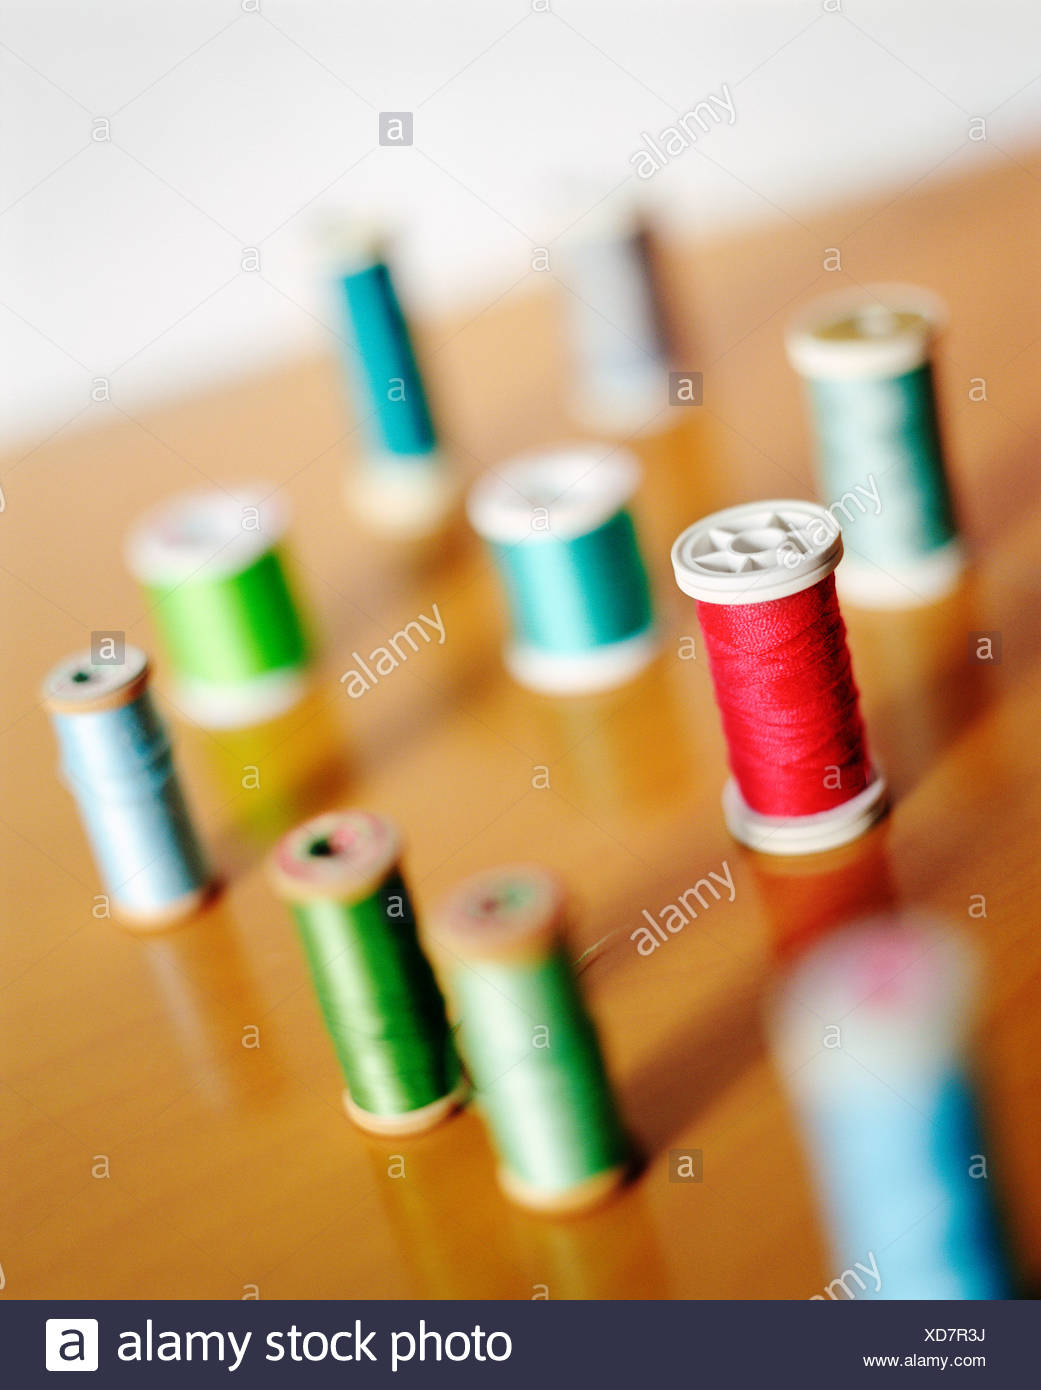 High angle view of spools of thread - Stock Image